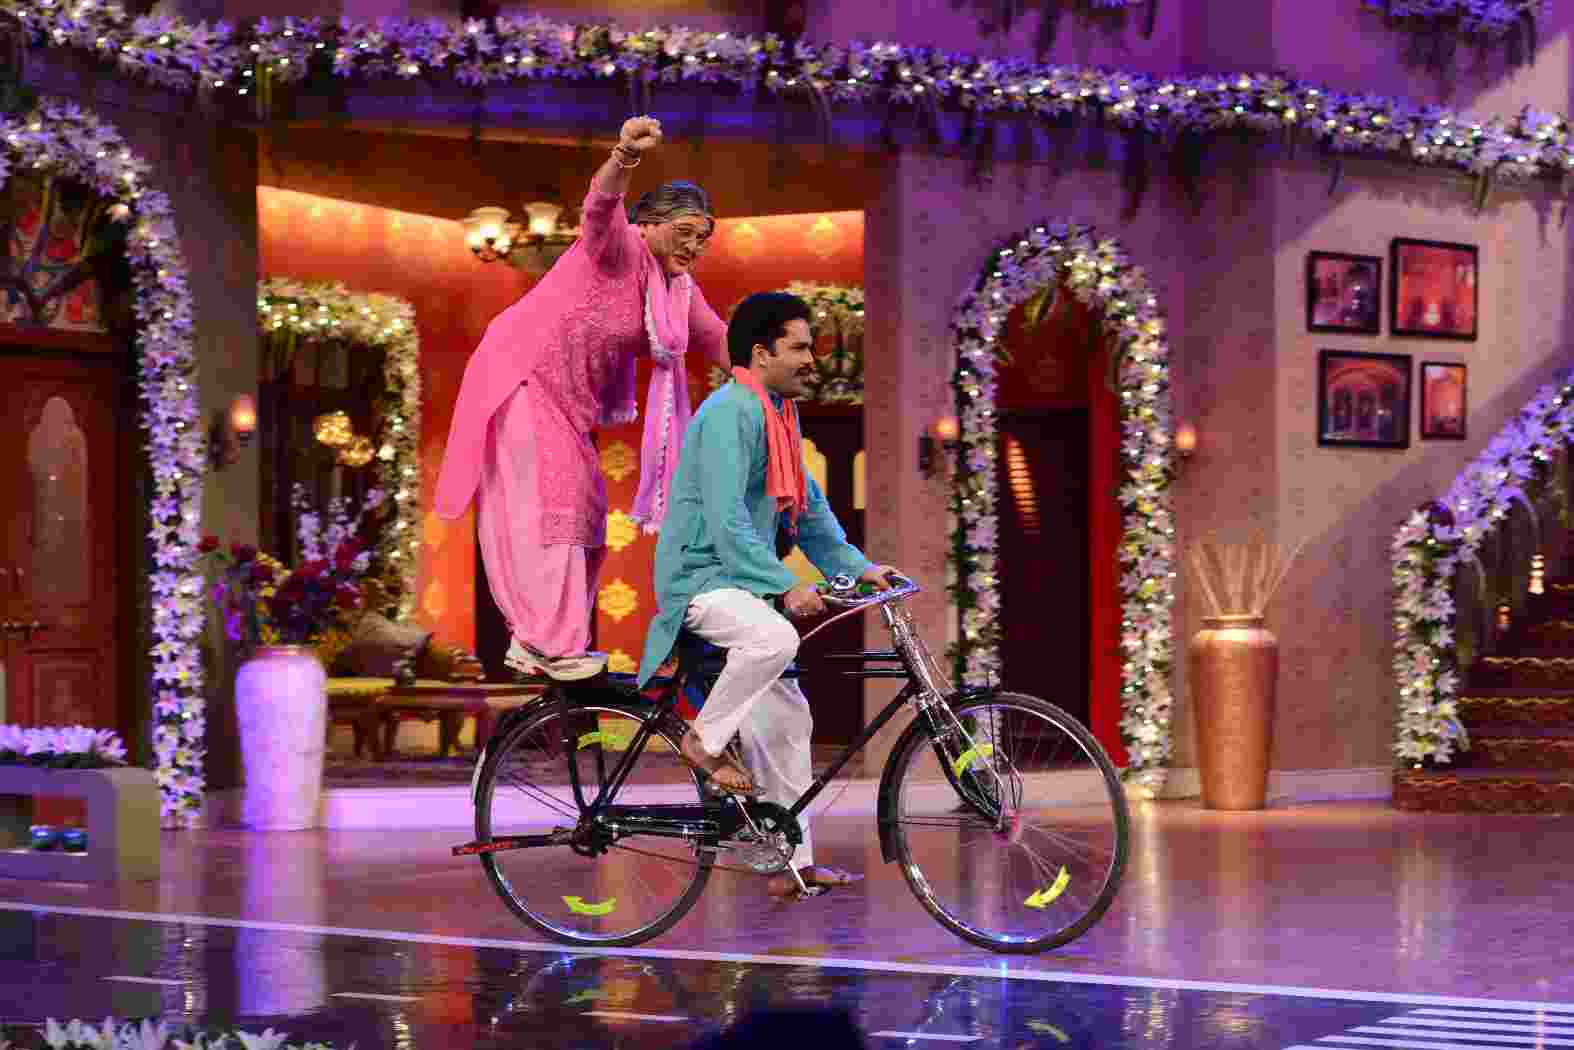 Singham cast celebrates the 100th episode of Comedy Nights With Kapil